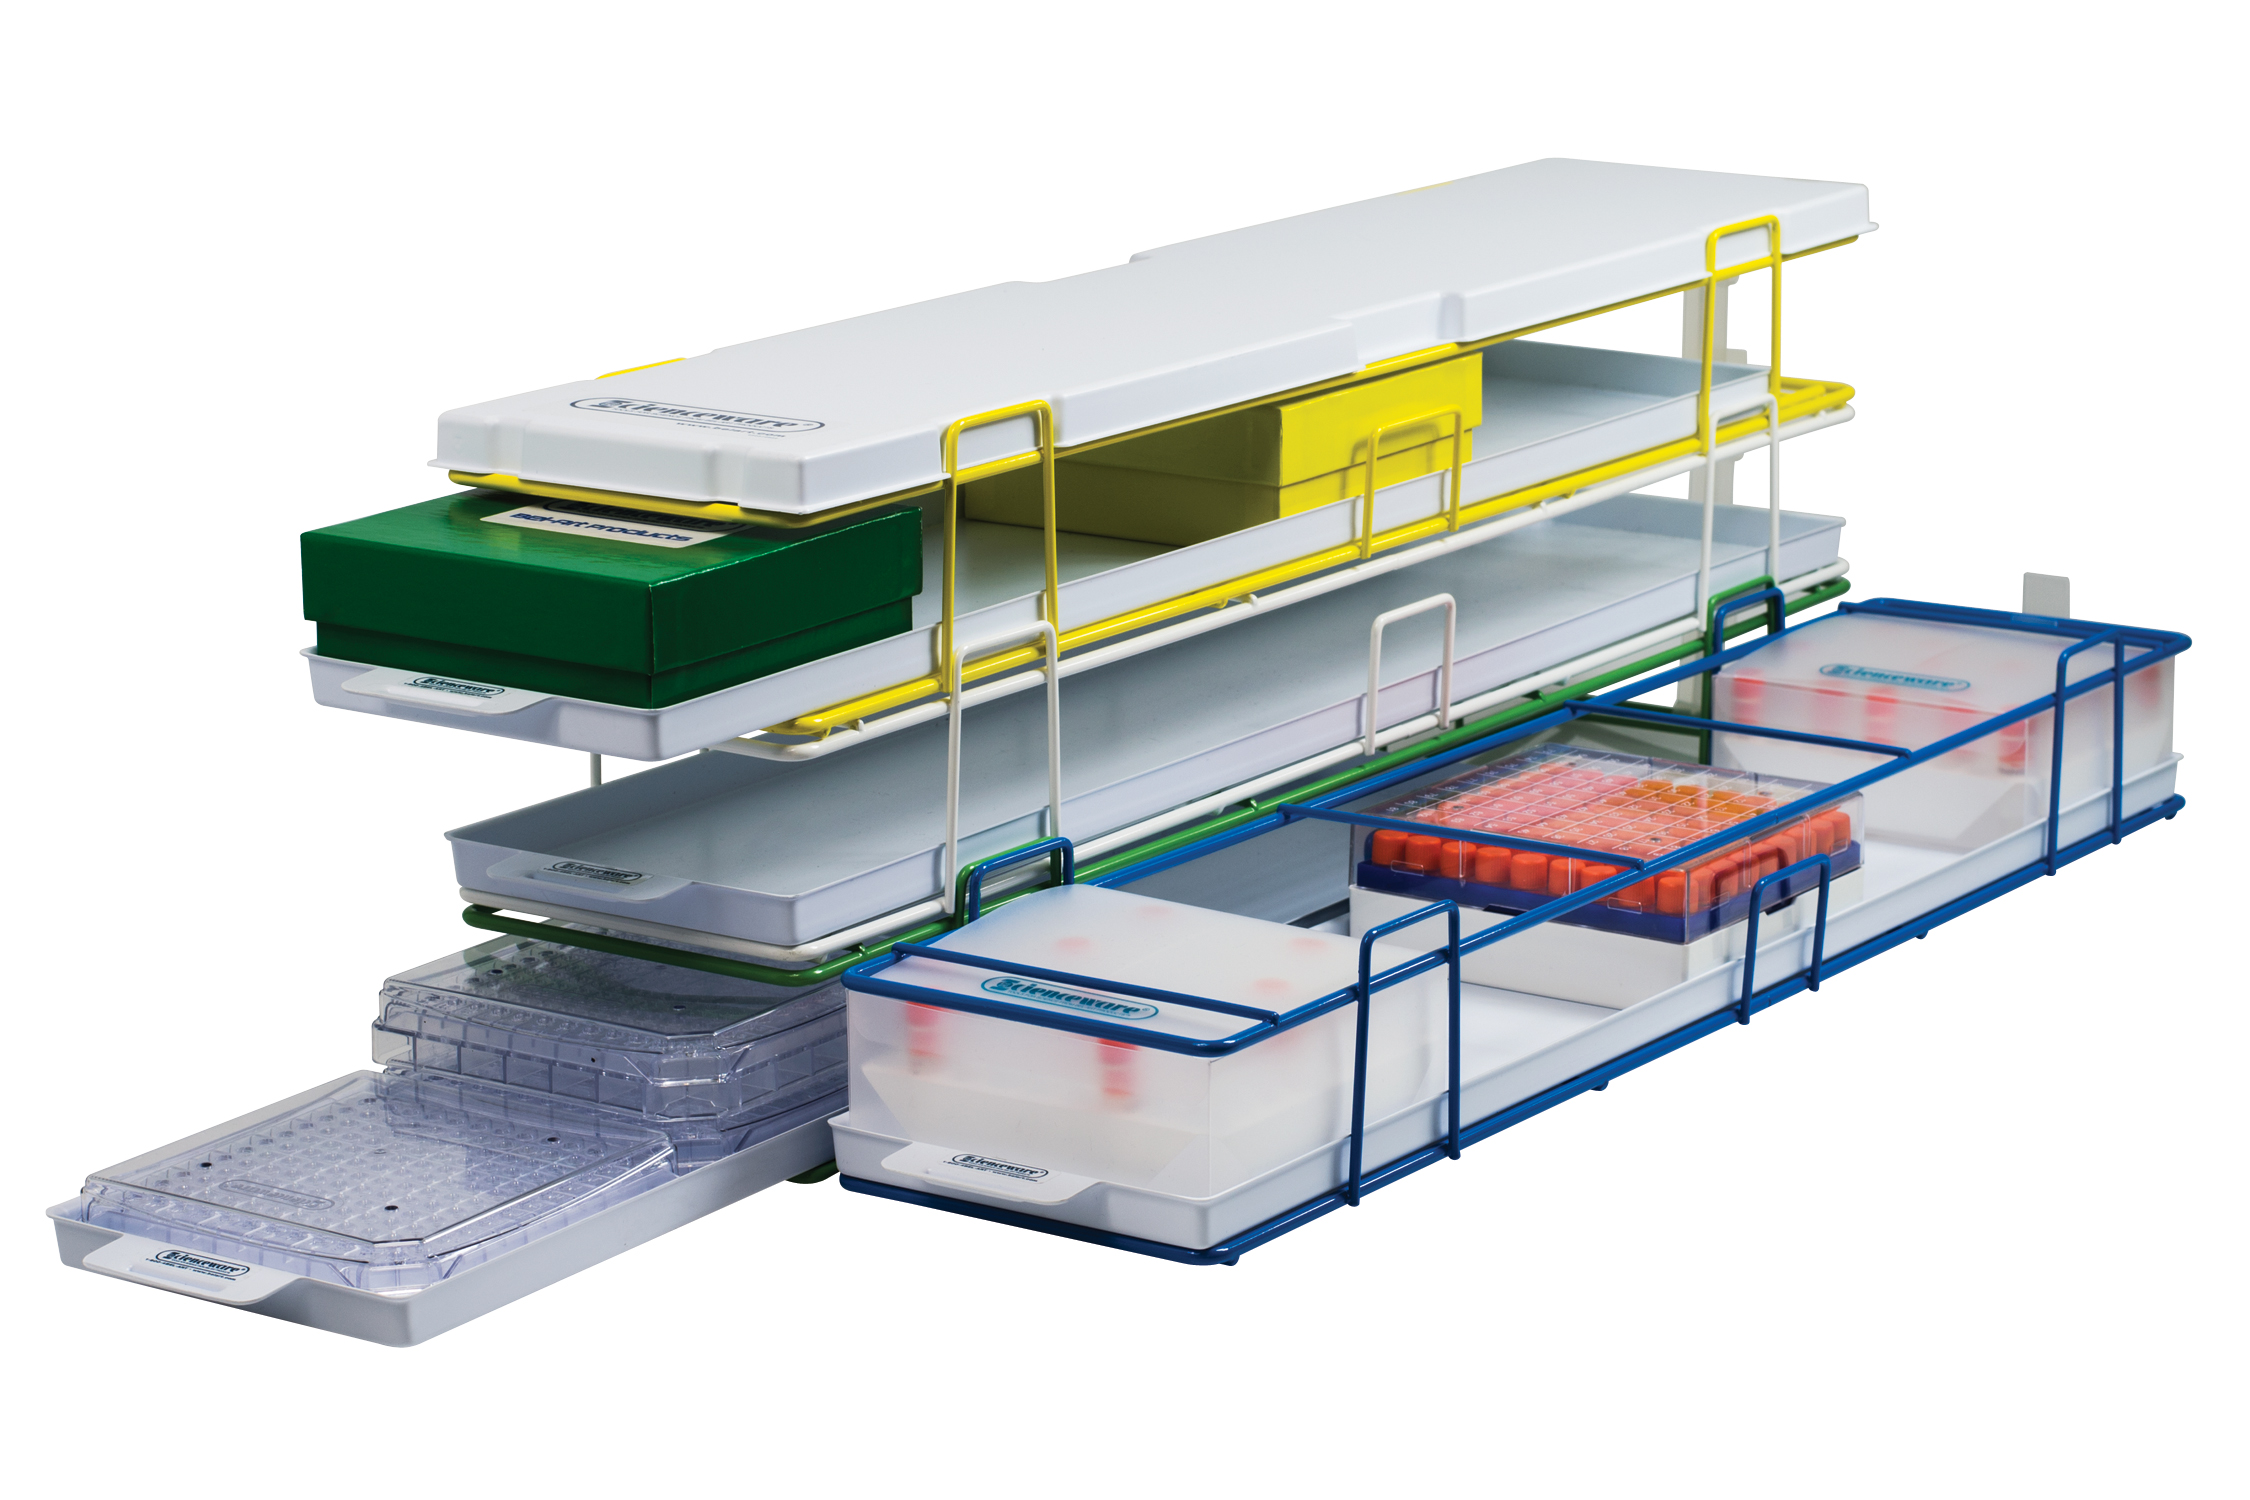 Modular Freezer Racks from Bel-Art SP Scienceware